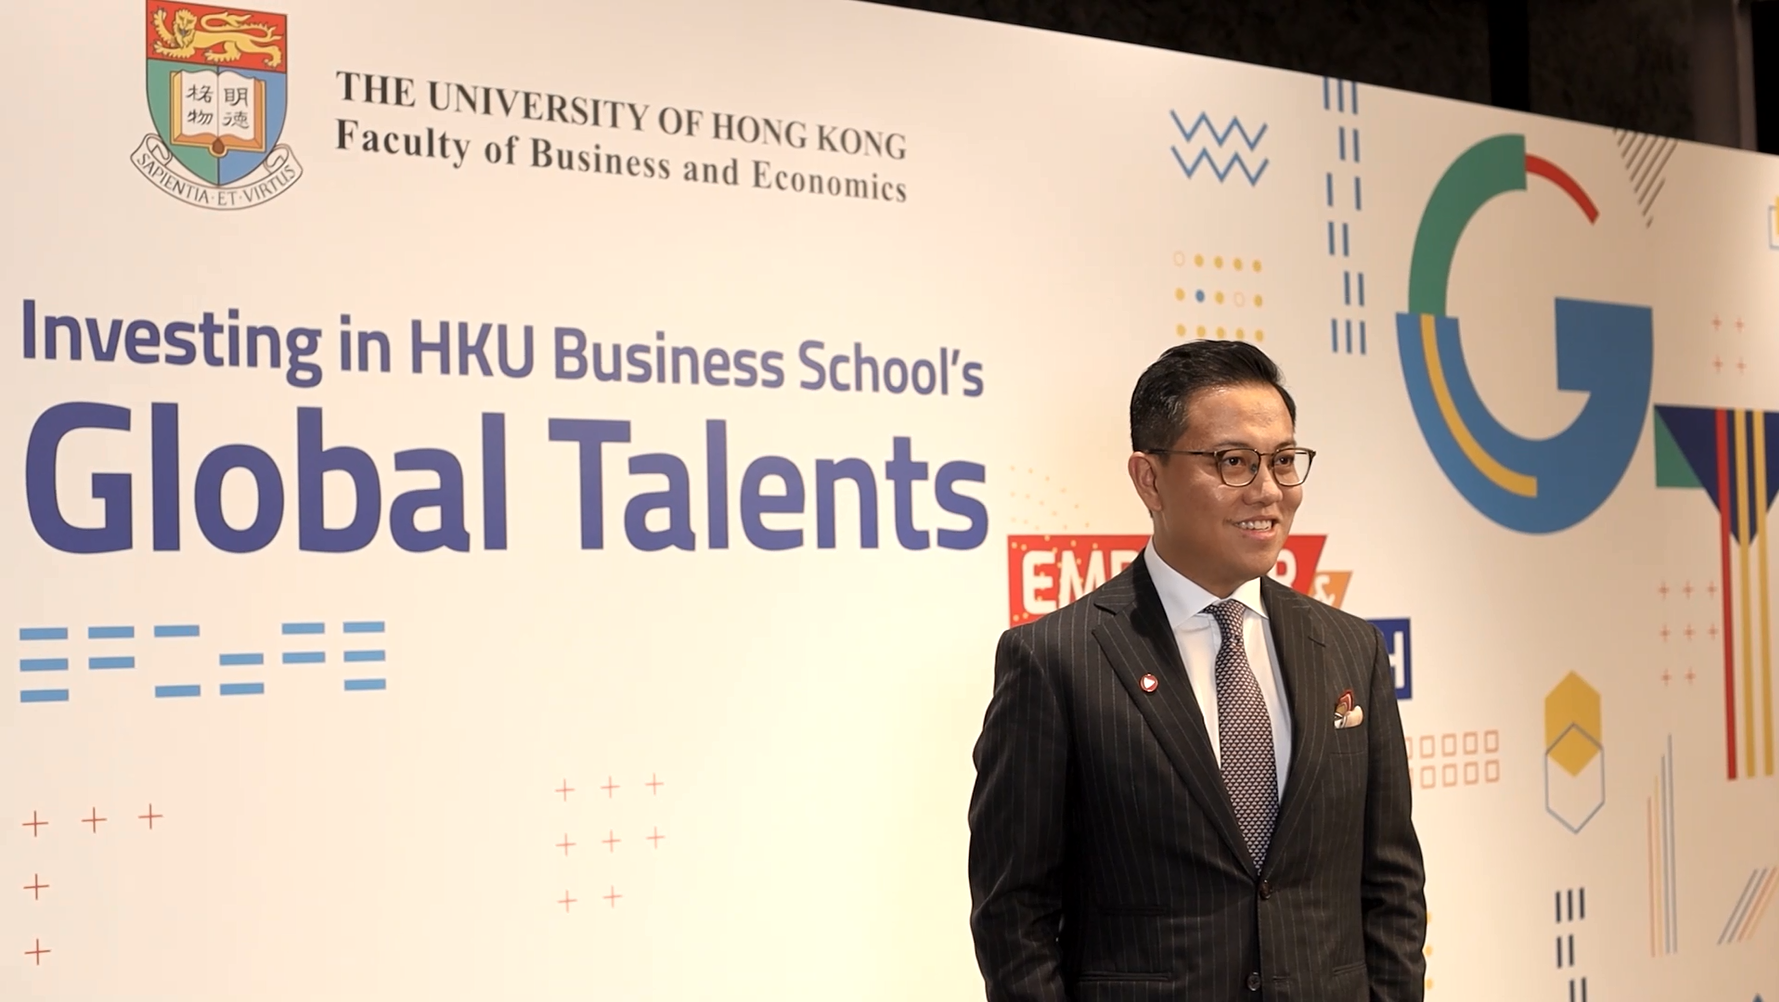 Investing in HKU Business School's Global Talents – Empower & Match